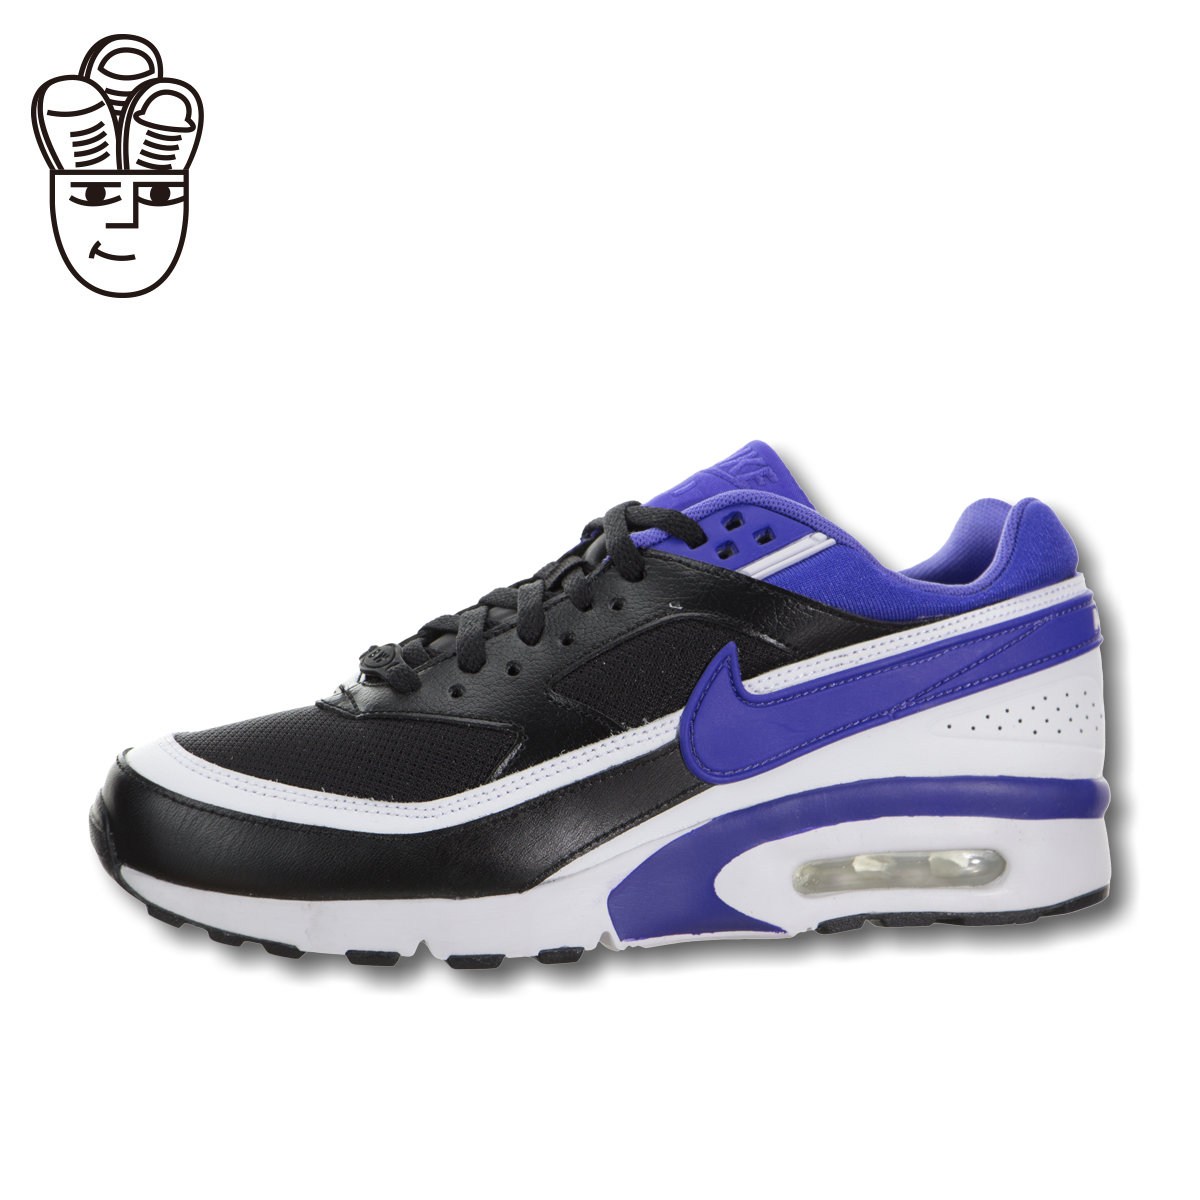 nike air max classic bw navy yard. Black Bedroom Furniture Sets. Home Design Ideas